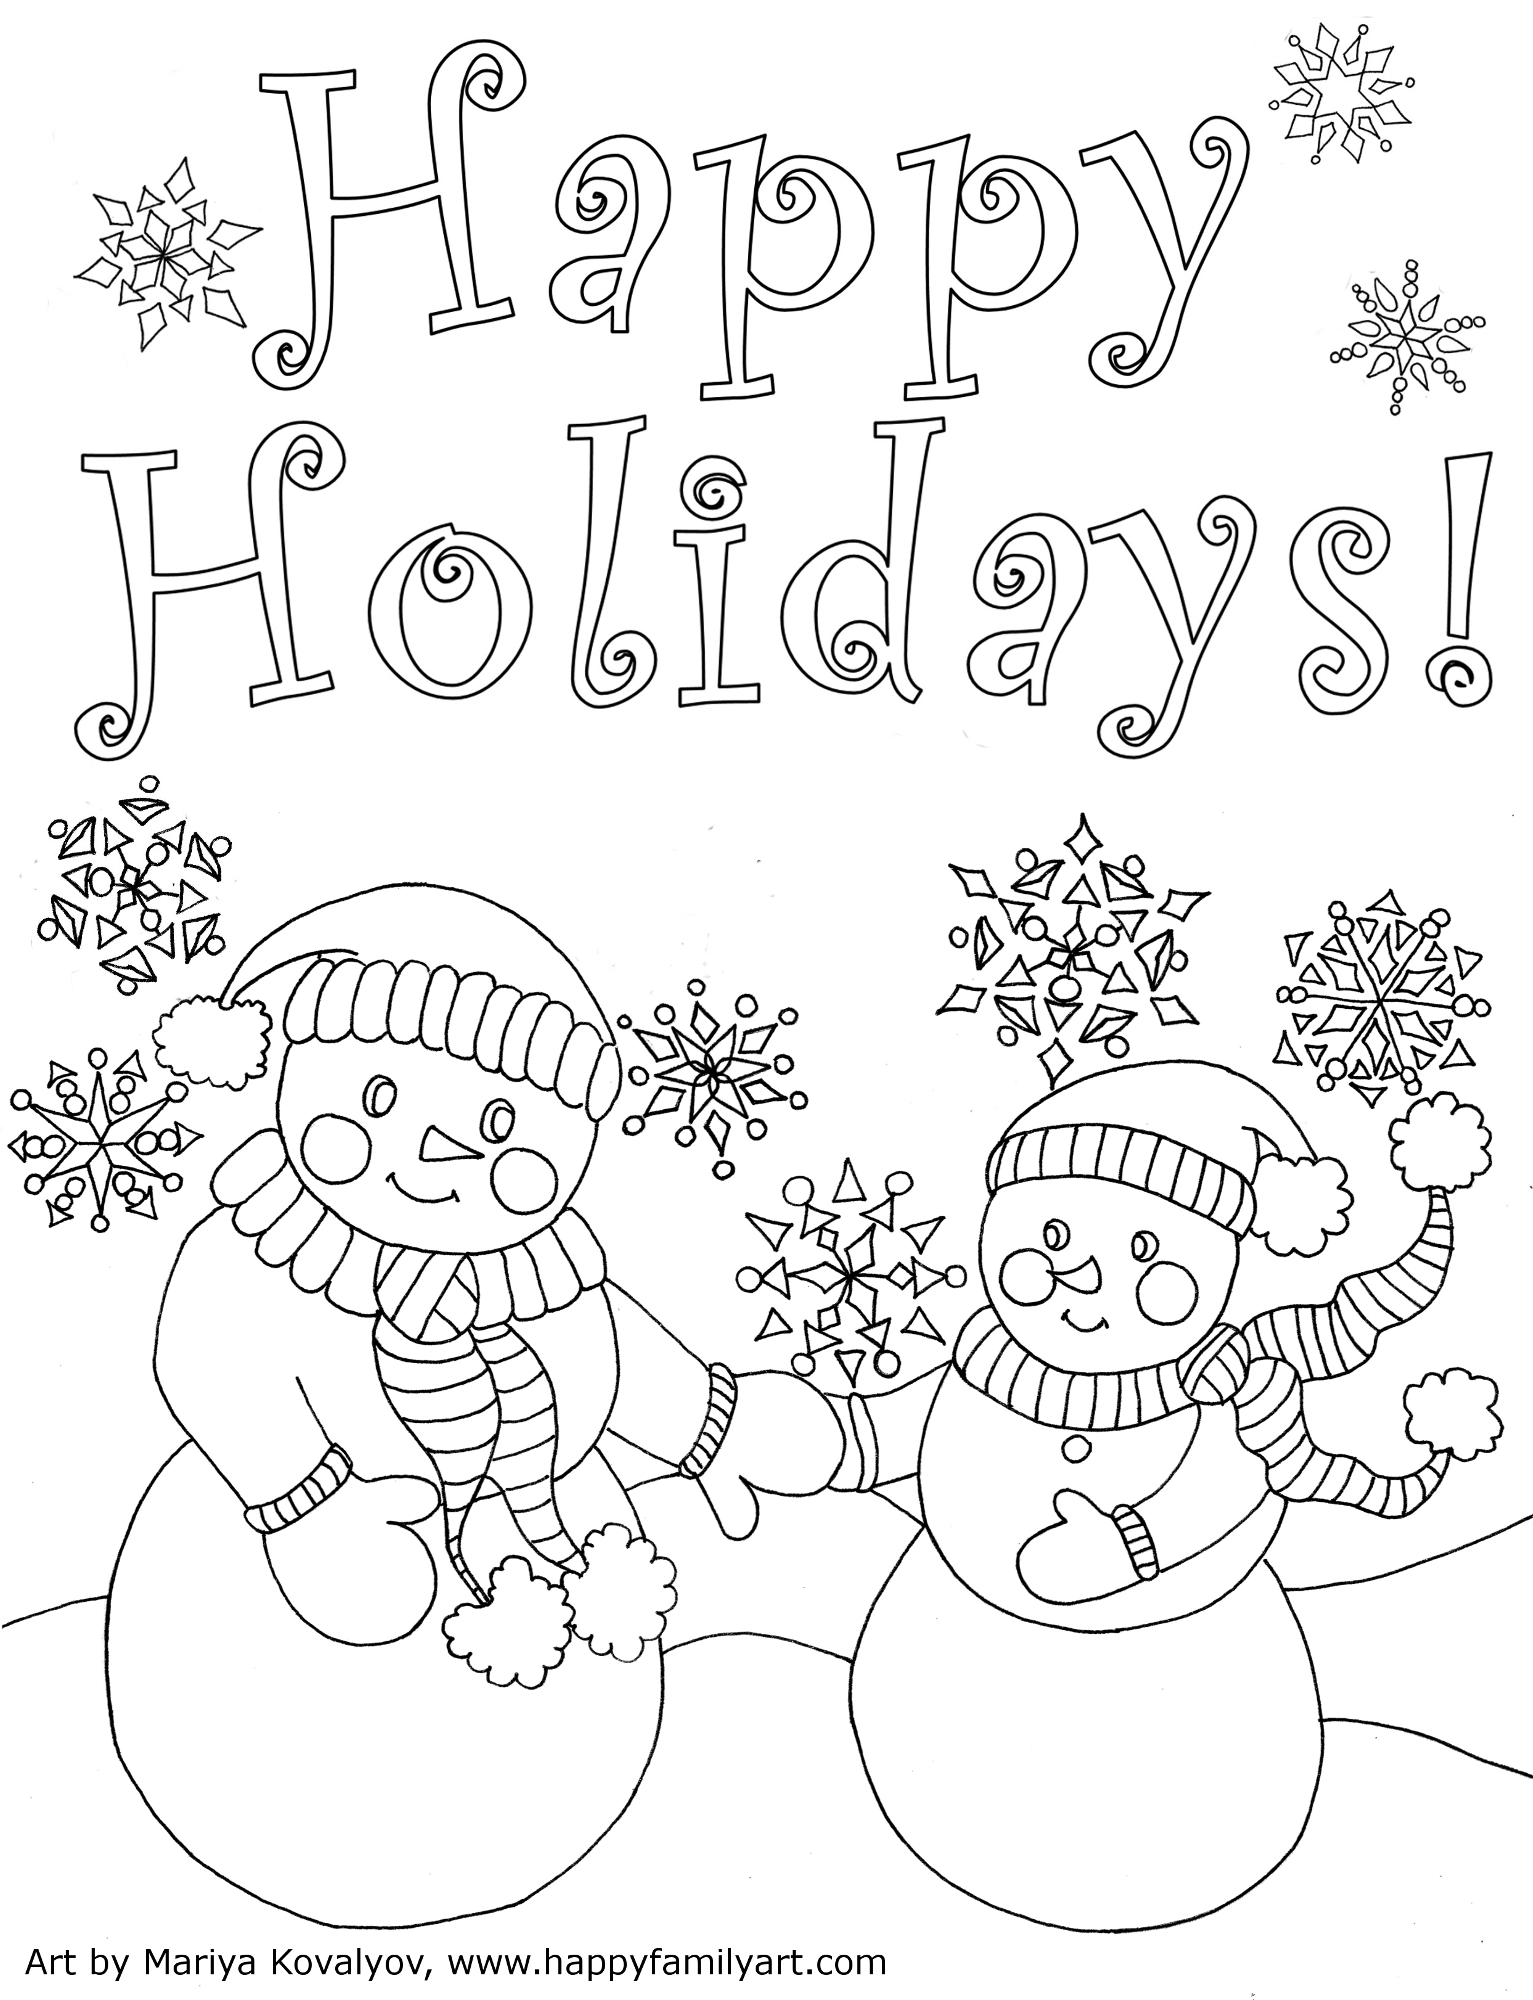 It's just an image of Simplicity Printable Coloring Christmas Cards